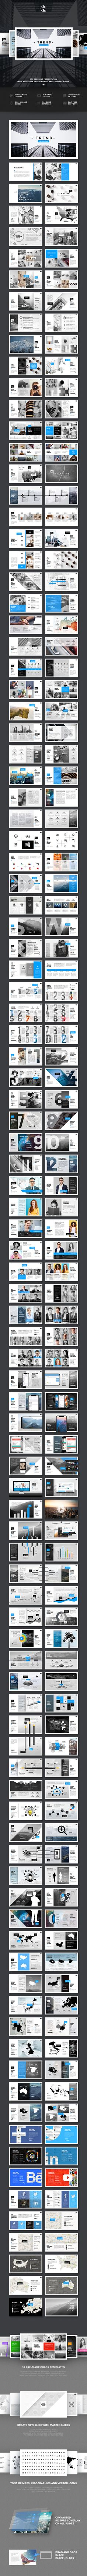 Trend PowerPoint #simple #design • Download ➝ https://graphicriver.net/item/trend-powerpoint/21309492?ref=pxcr